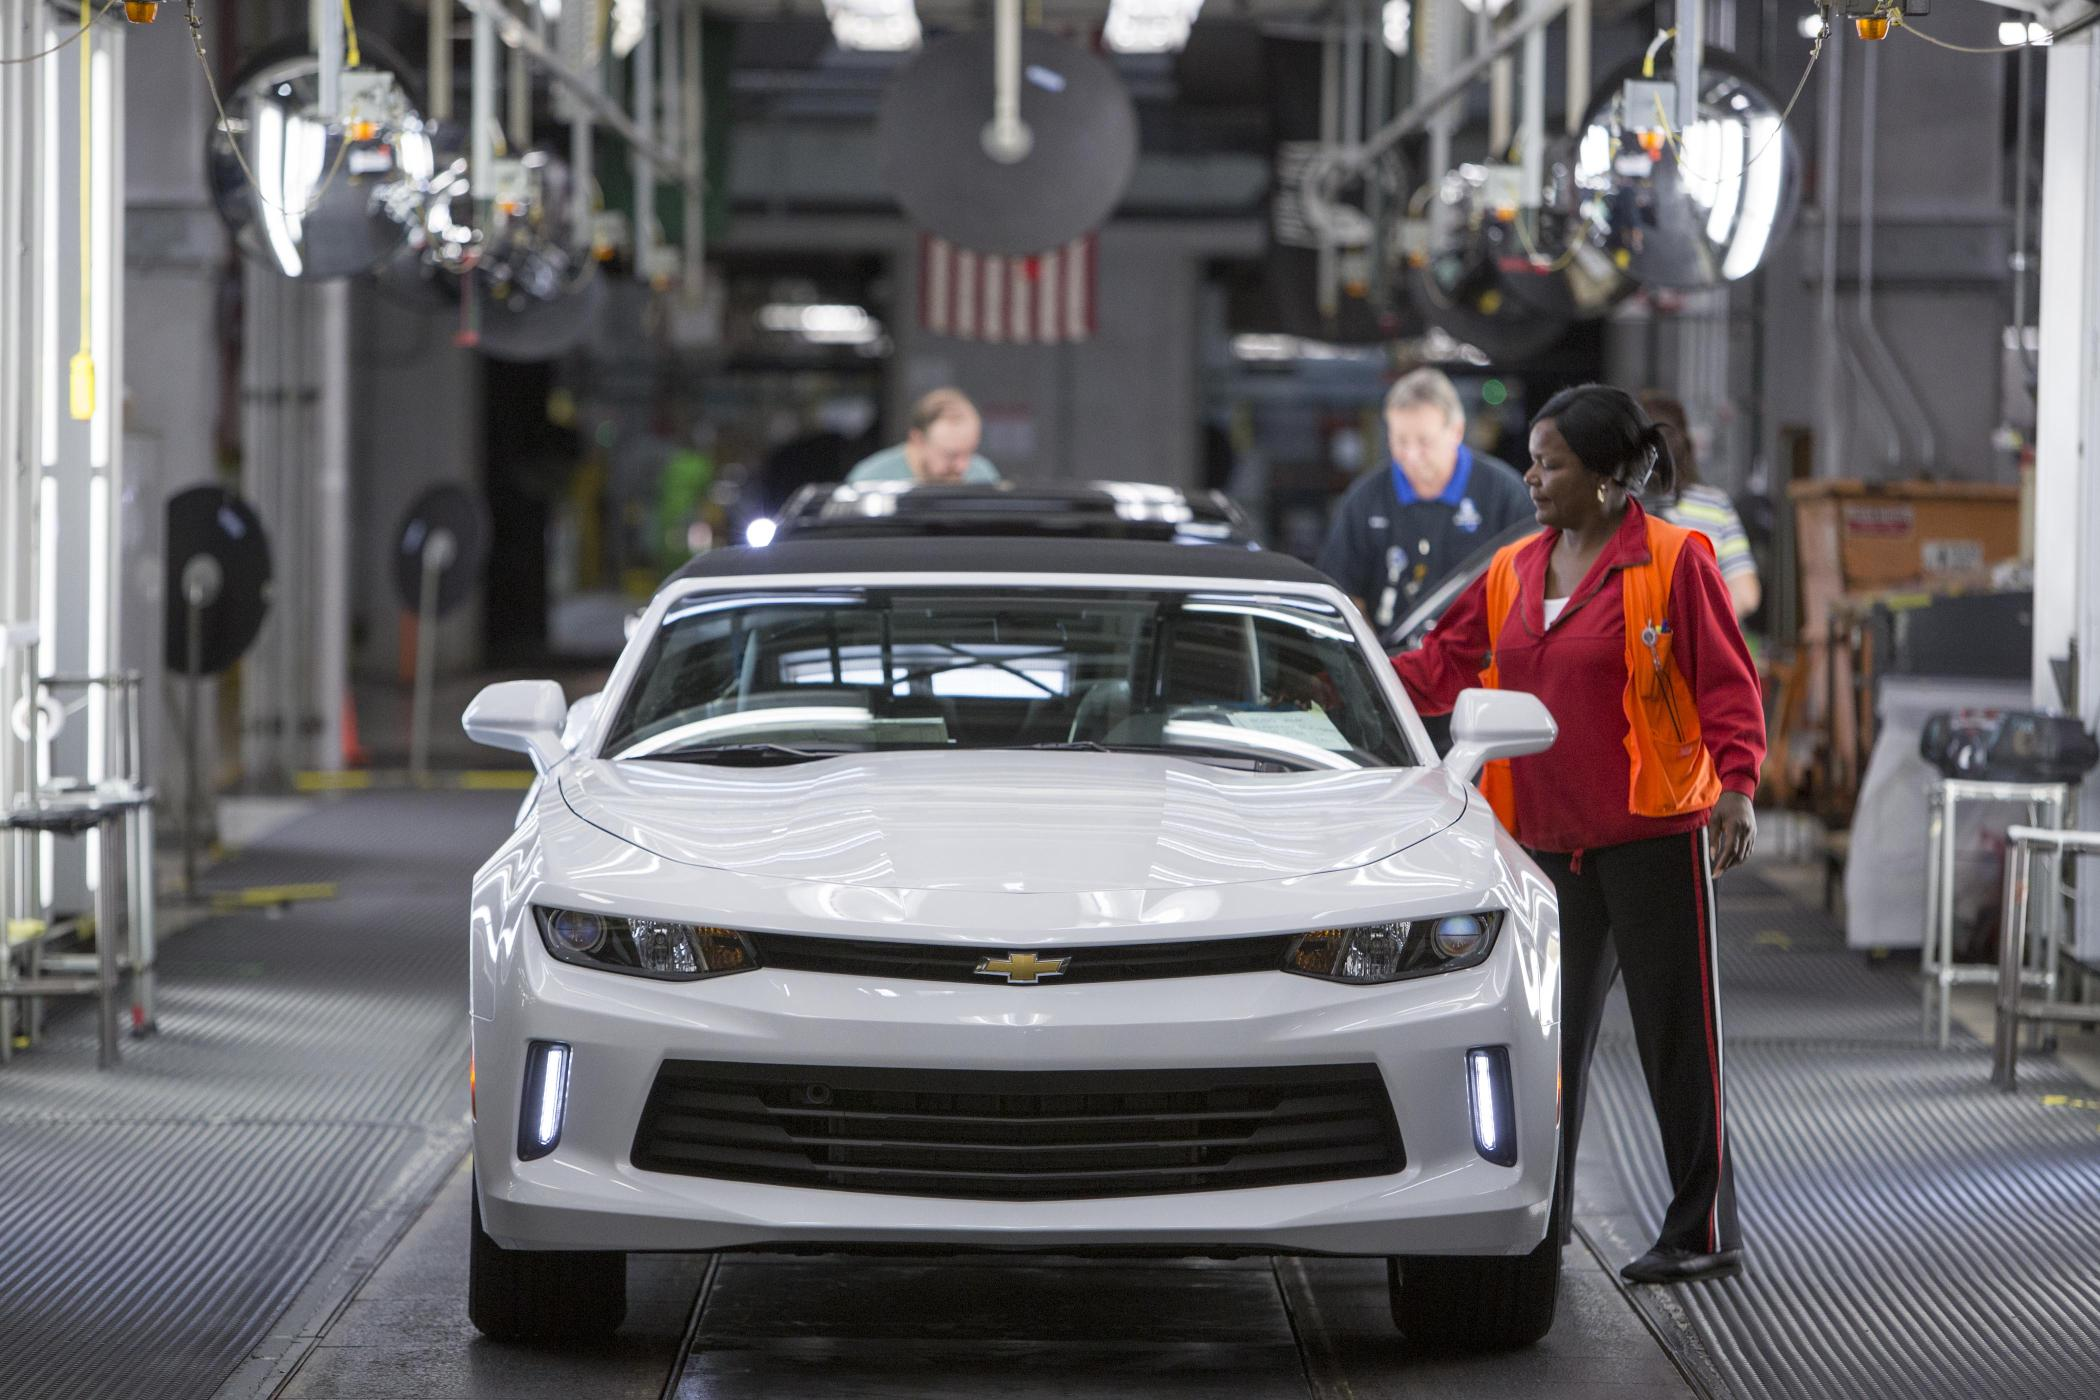 First Batch Of 2016 Chevrolet Camaro Leaves The Factory